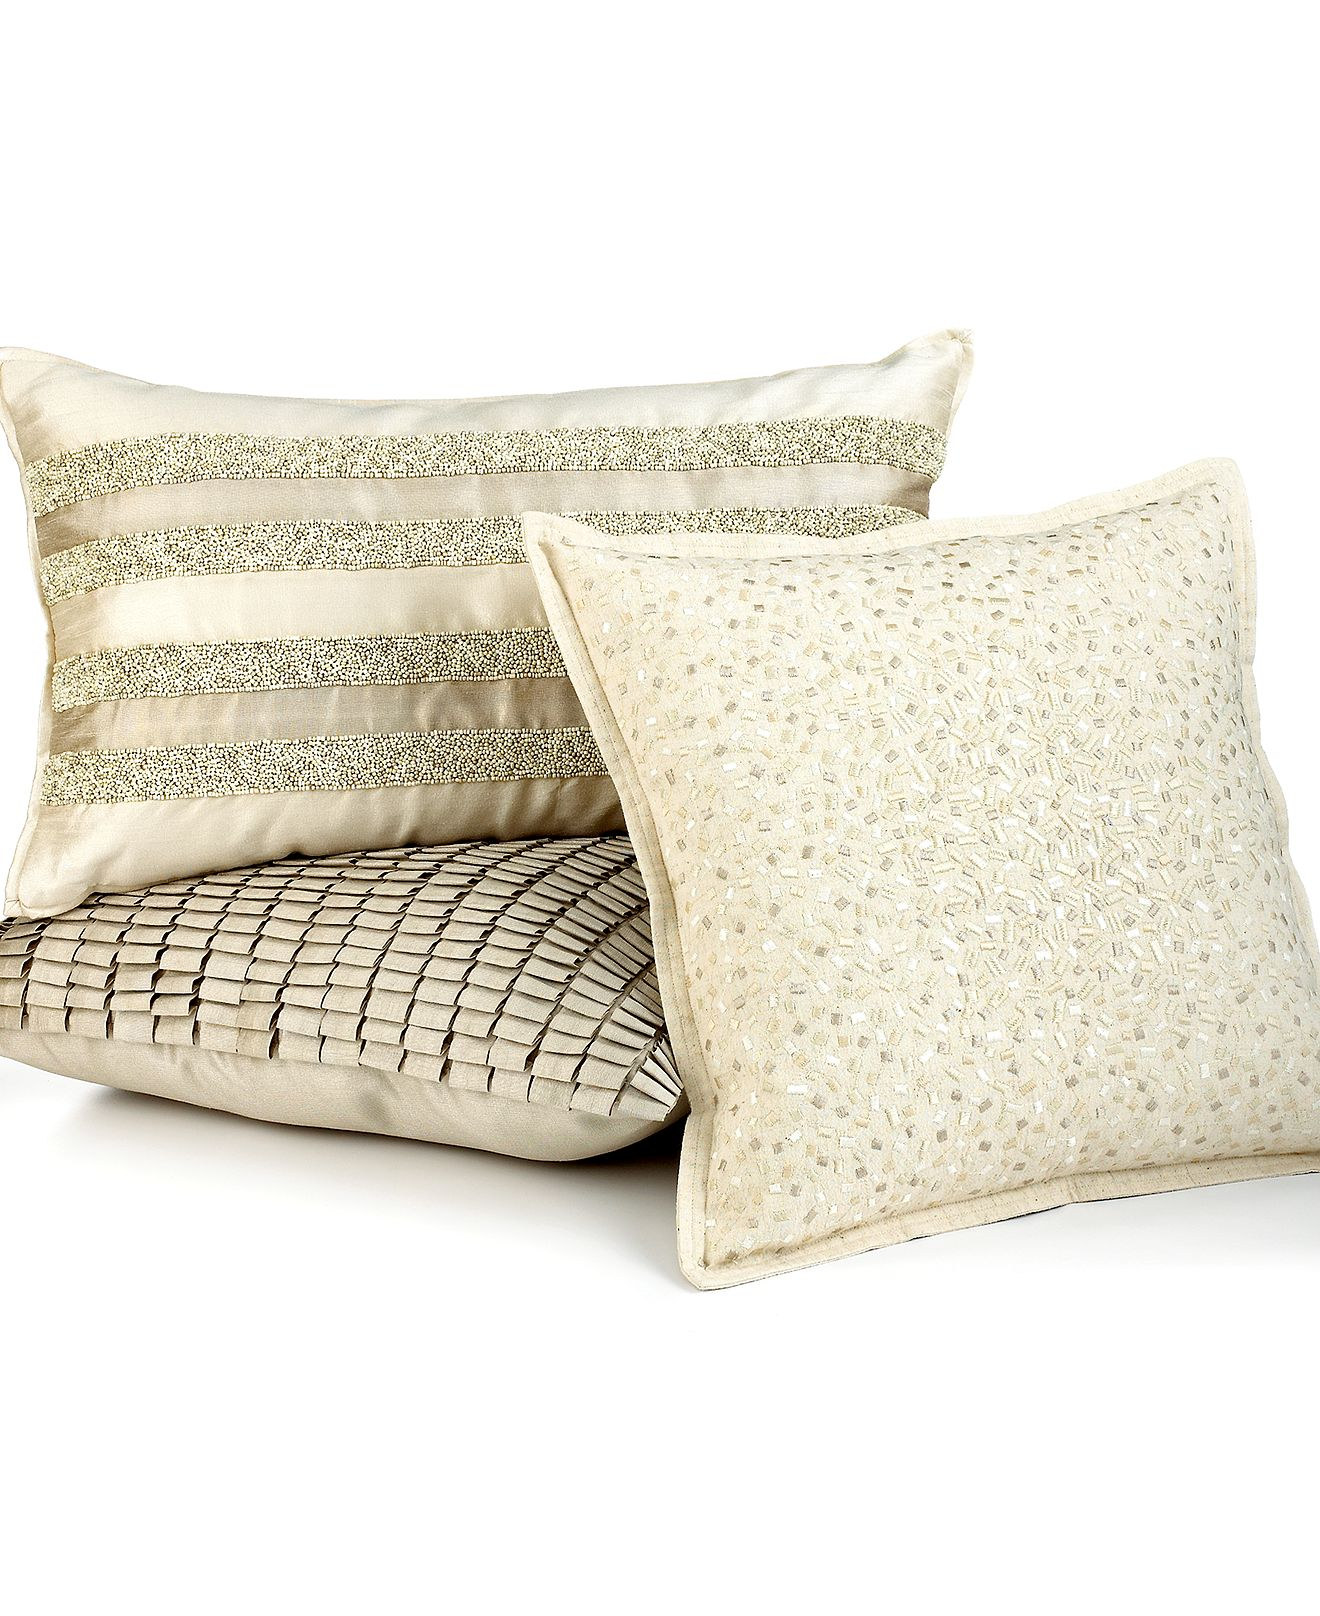 Hotel Collection Bedding, Celestial From Macys